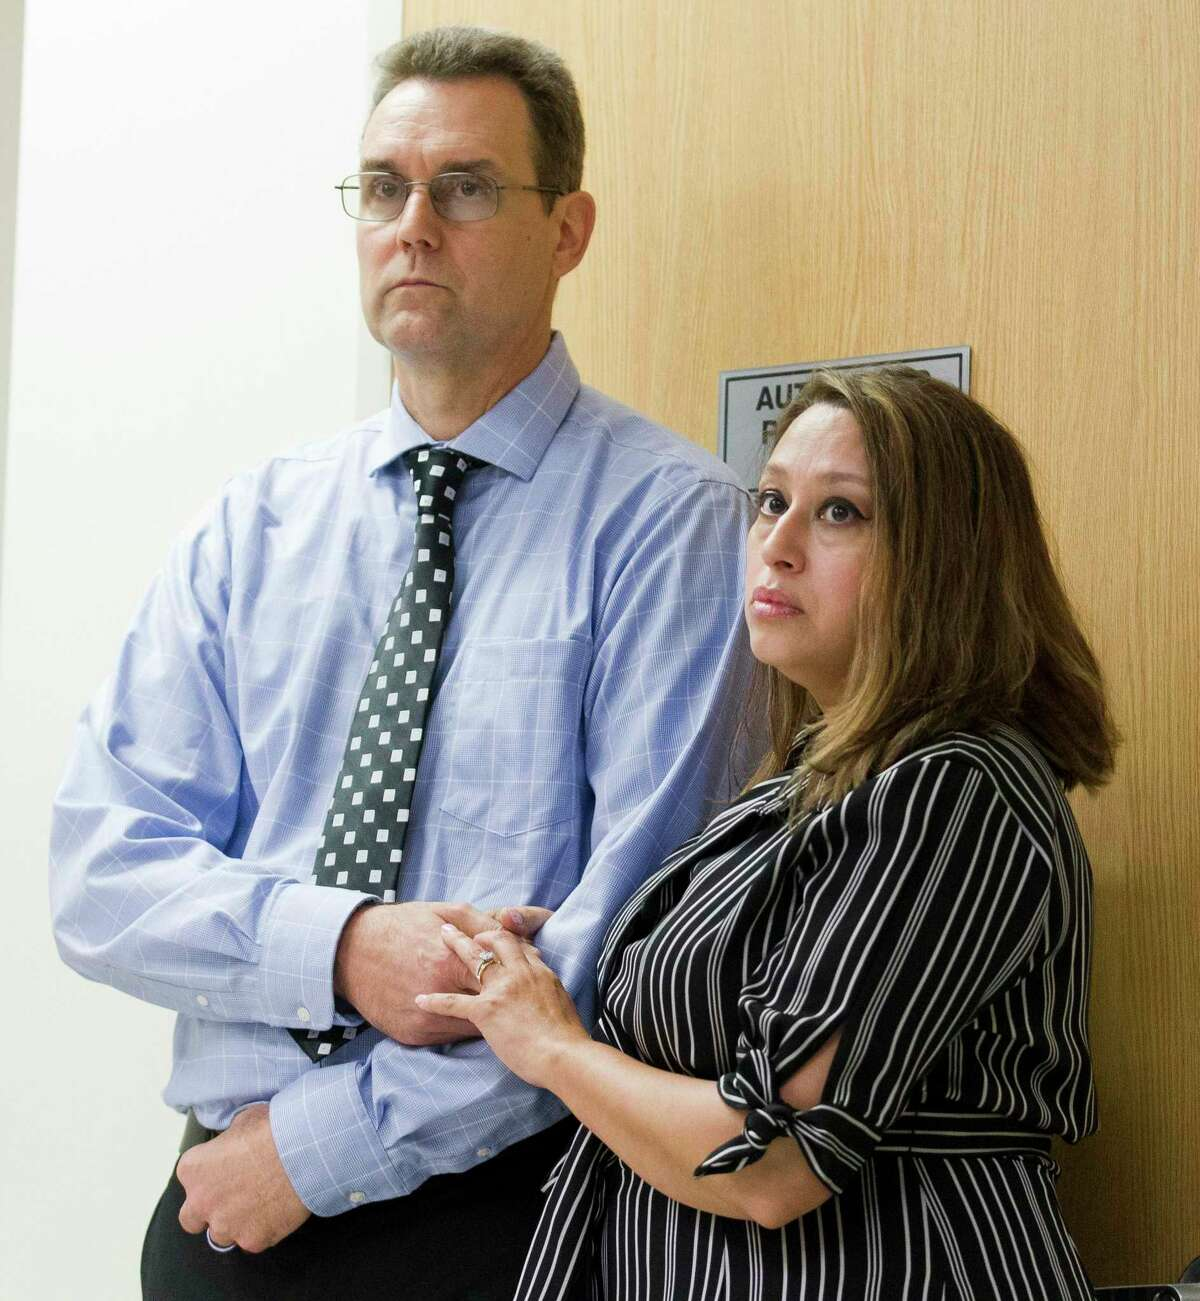 Teresa Gallant, daughter of Teresa Brignoni, holds hands with her husband, Richard, before a hearing for Noel King, Jr. in the courtroom of 359th state District Judge Kathleen Hamilton, Tuesday, July 30, 2019, in Conroe. The case was reopened in April 2017 after the La Porte resident was arrested for the 1983 murder of his fiancée, Teresa Brignoni. King was released from the Montgomery County Jail on a $300,000 bond, but later died.